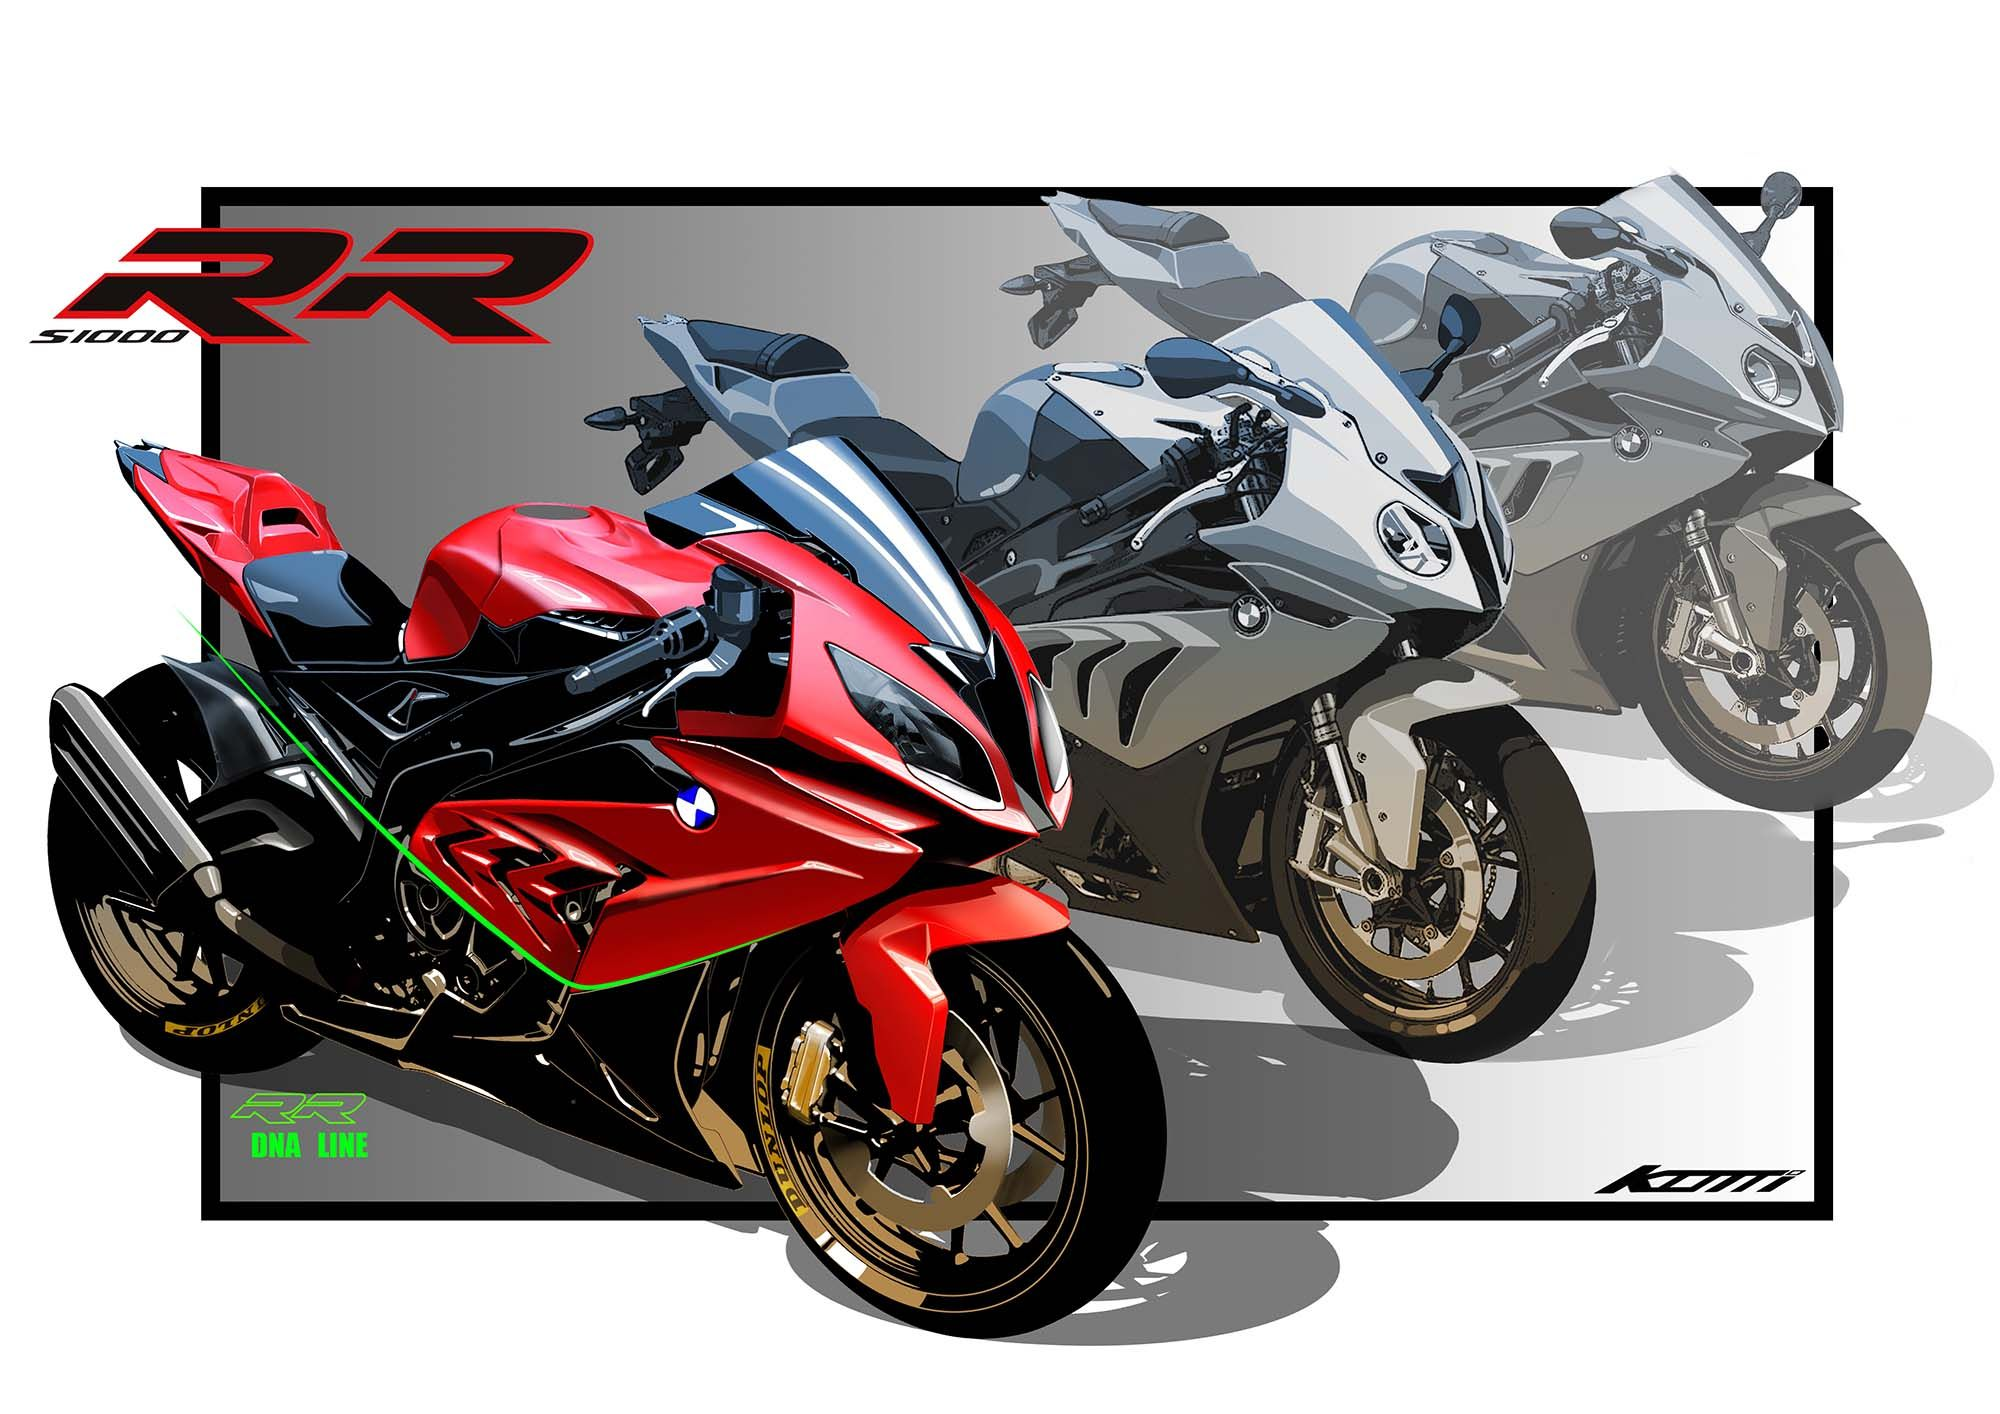 Bmw S1000rr 2015 With Images Bike Sketch Bmw S1000rr